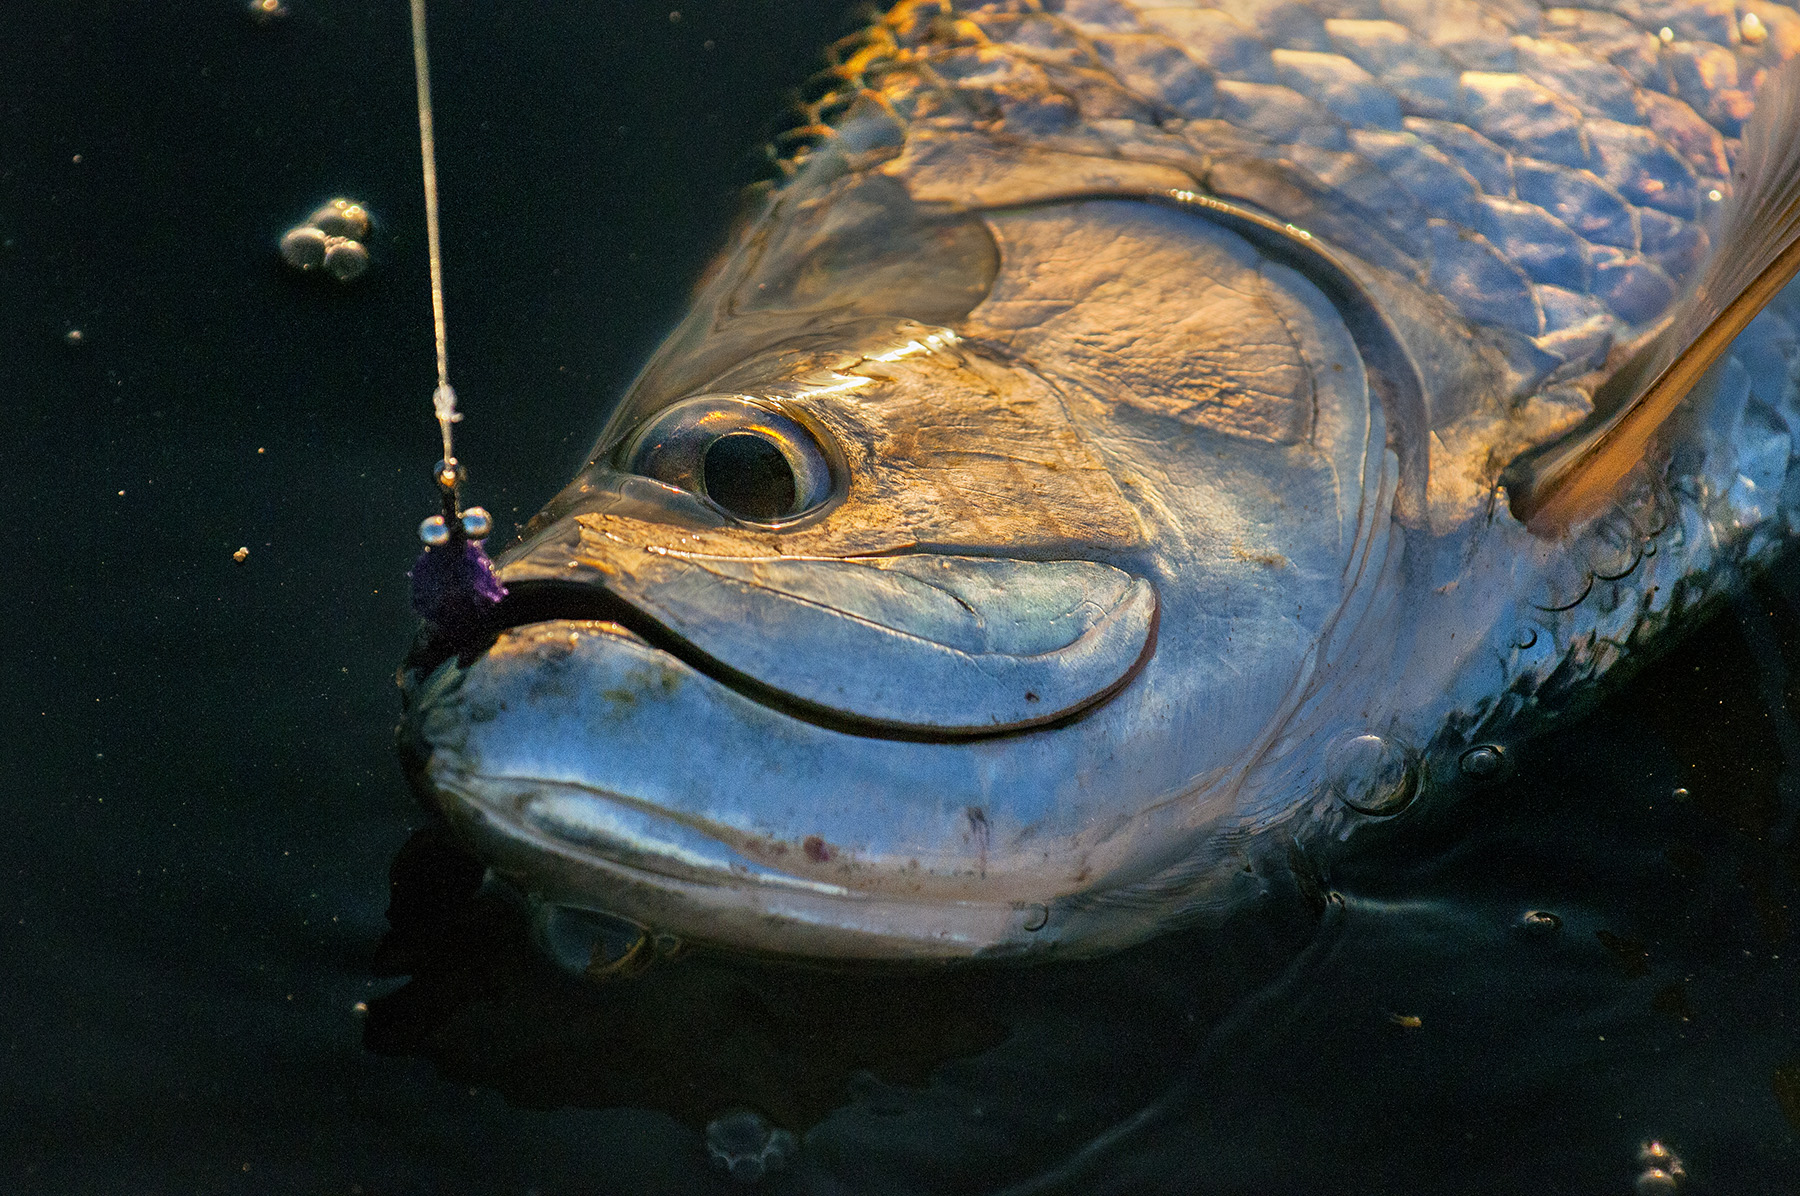 tarpon-on-fly-florida-keys-fly-fishing-with-saltwater-experience-by-jason-stemple